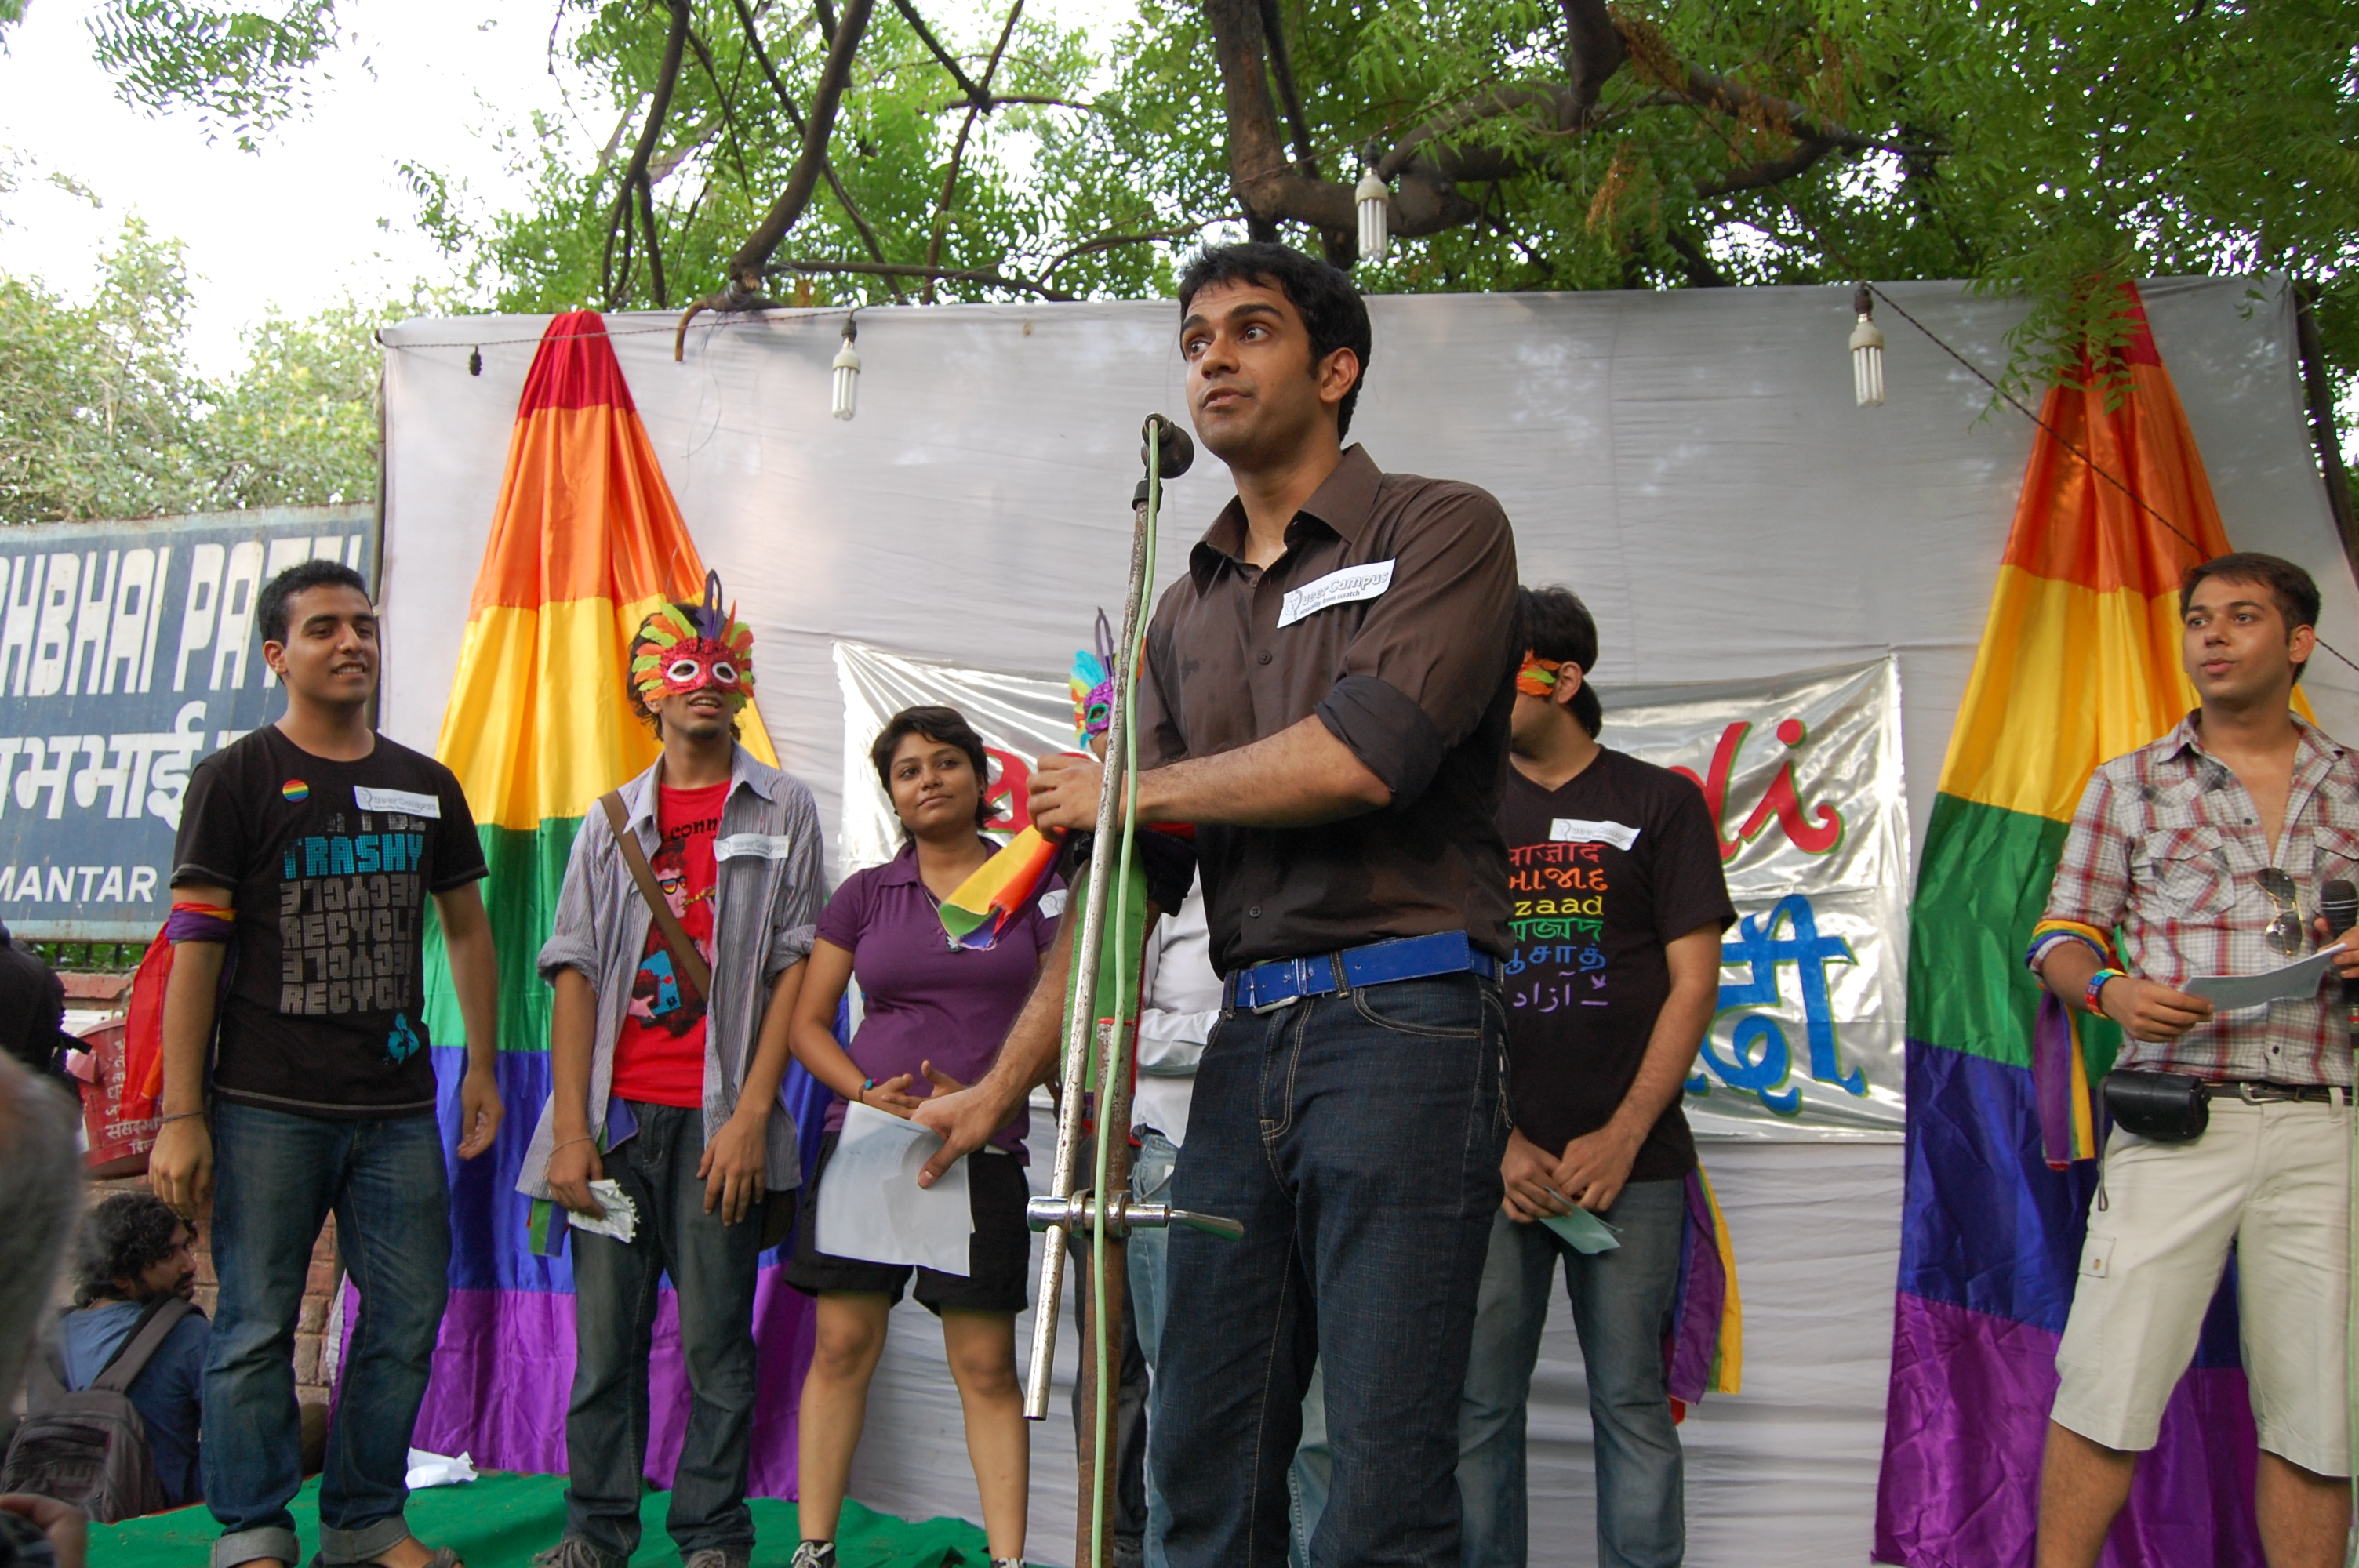 India's Supreme Court To Review Law Criminalizing Homosexuality